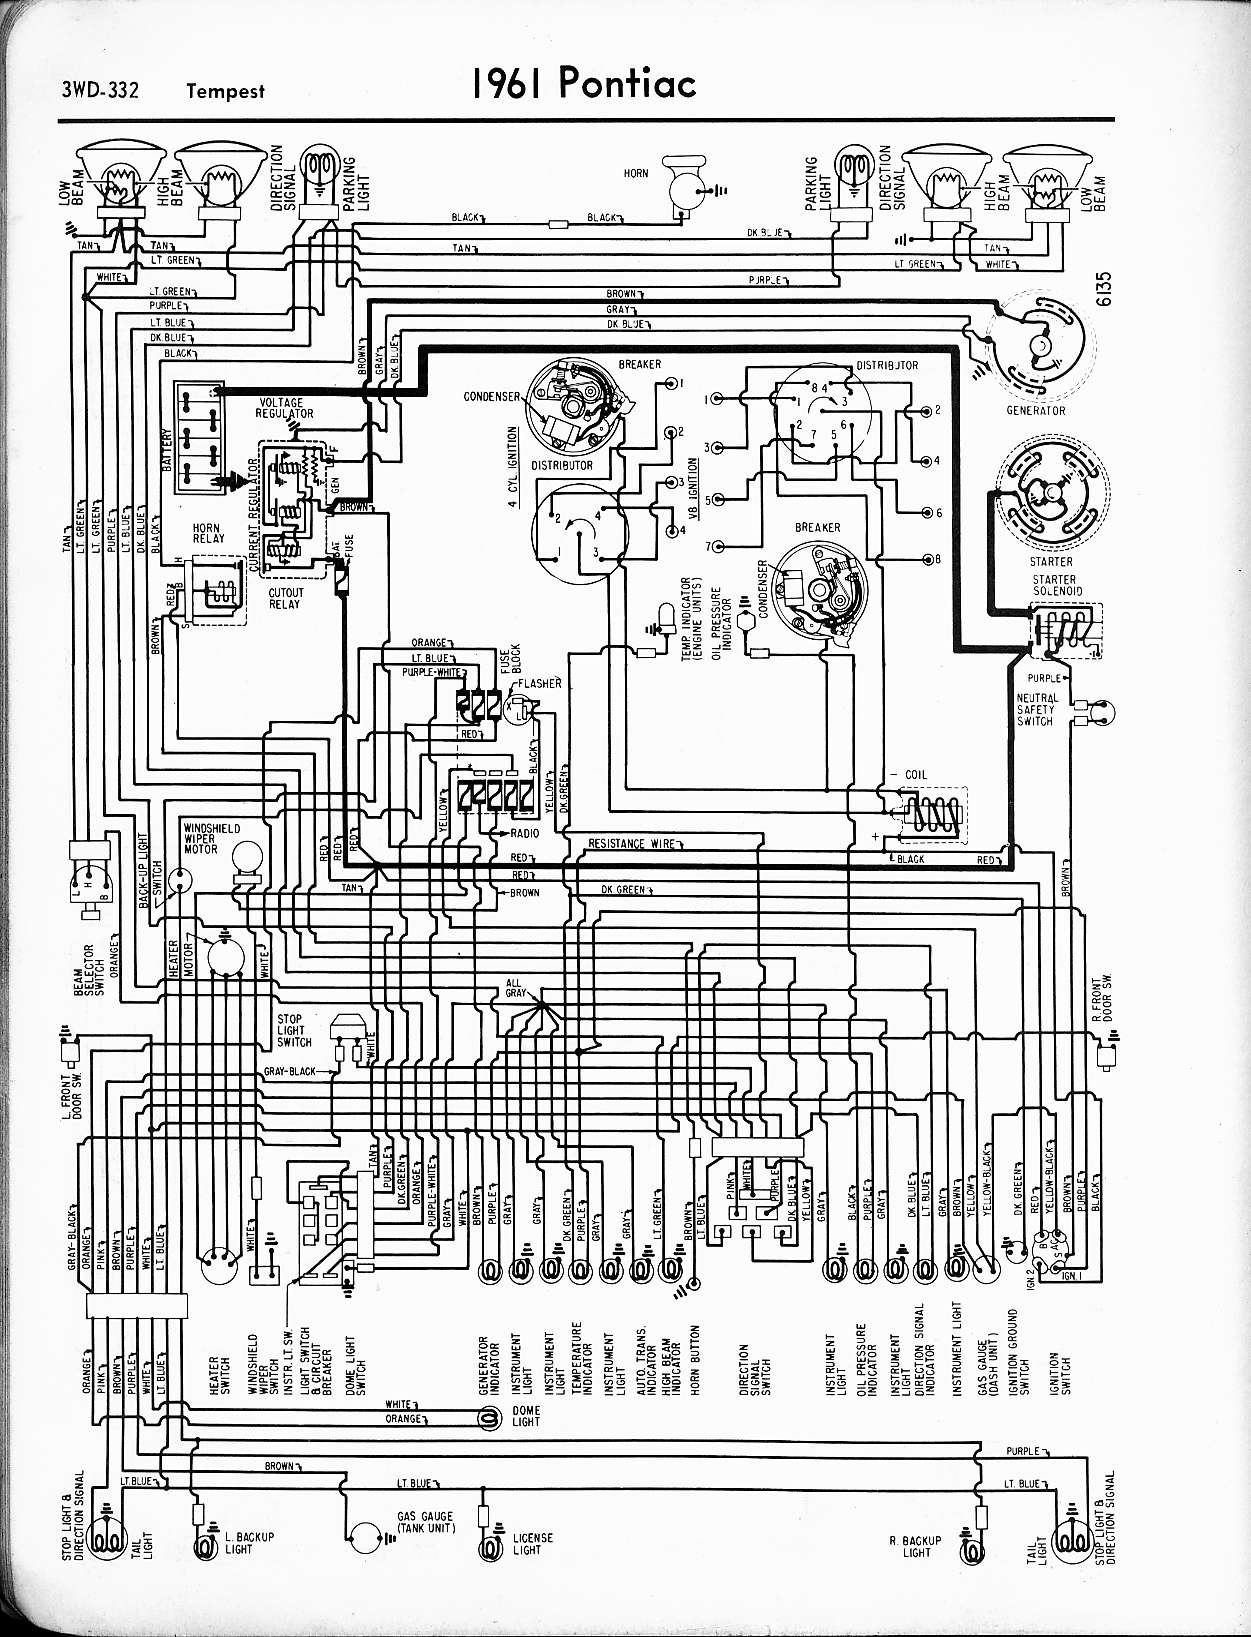 1960 pontiac wiring diagram 1960 pontiac wiring diagram schematic